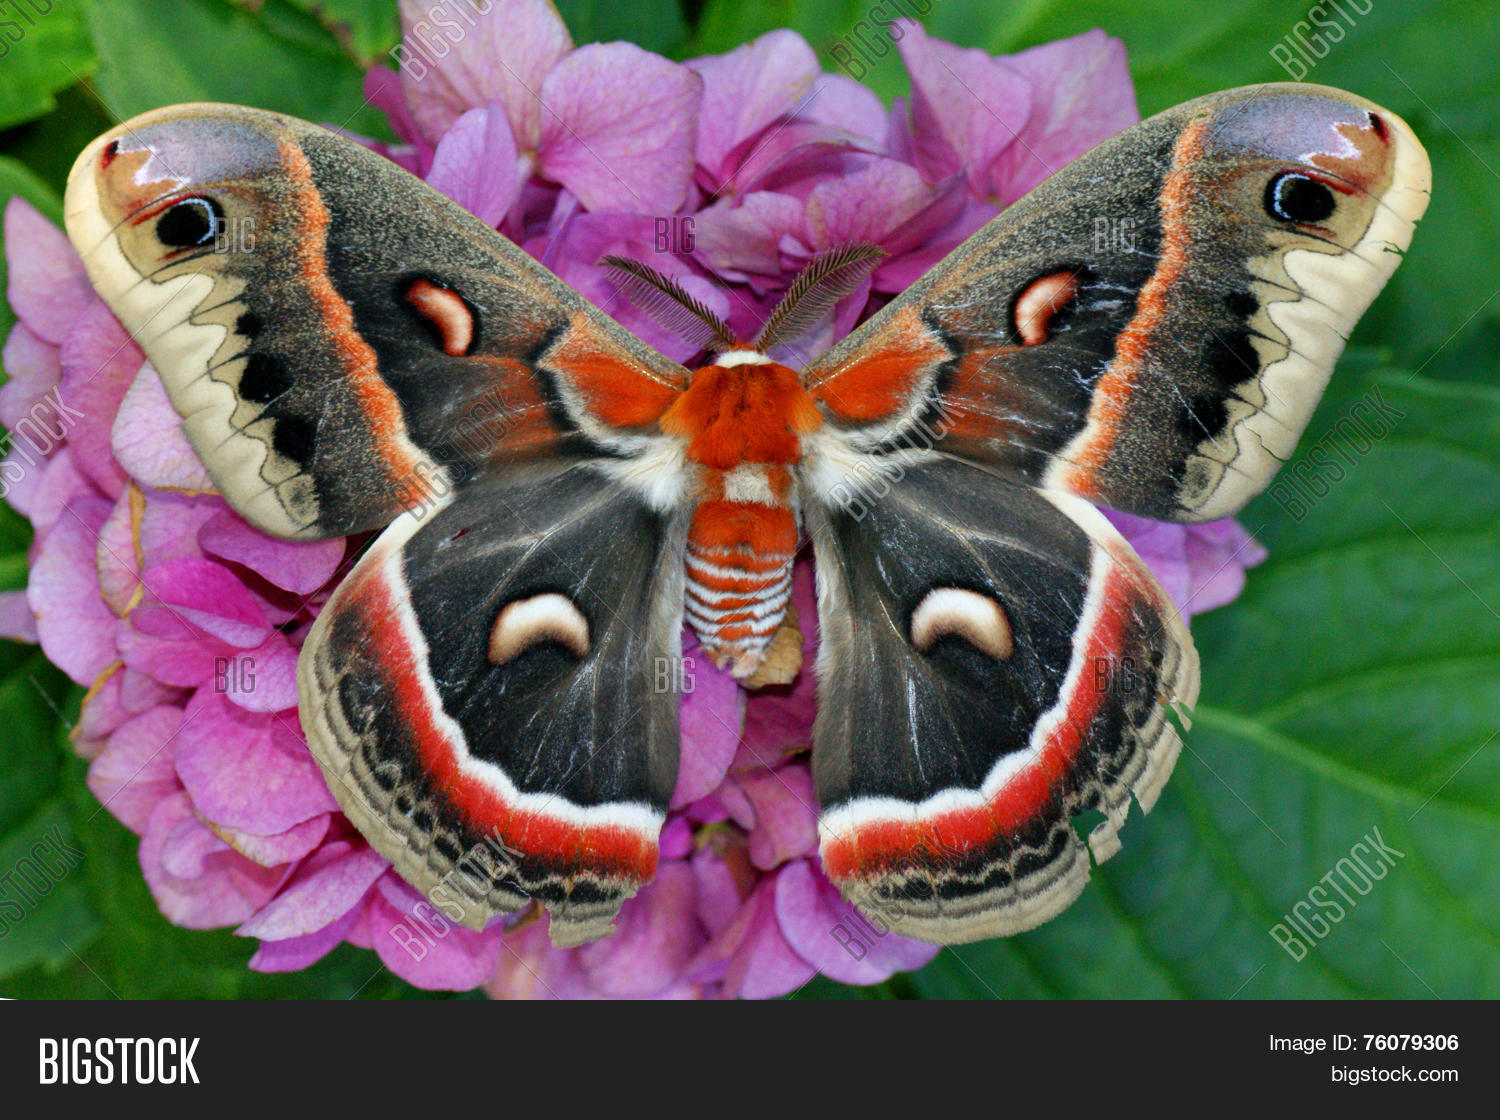 animal,antenna,antennae,atlas,attractive,beautiful,big,bird,blue,butterfly,caterpillar,cecropia,colorful,columbia,cute,exotic,flower,giant,gloveri,green,huge,hyalophora,hydrangea,hylaphora,large,largest,lepidoptera,luna,monarch,monarch butterfly,moth,nature,pink,pink flowers,plant,pretty,purple flower,purple flowers,rare,red,robin,saturnid,saturnidae,saturniid,saturniidae,silk,silkworm,swallowtail,uncommon,white,wild,wild flowers,wildlife,world,yellow,yellow flowers